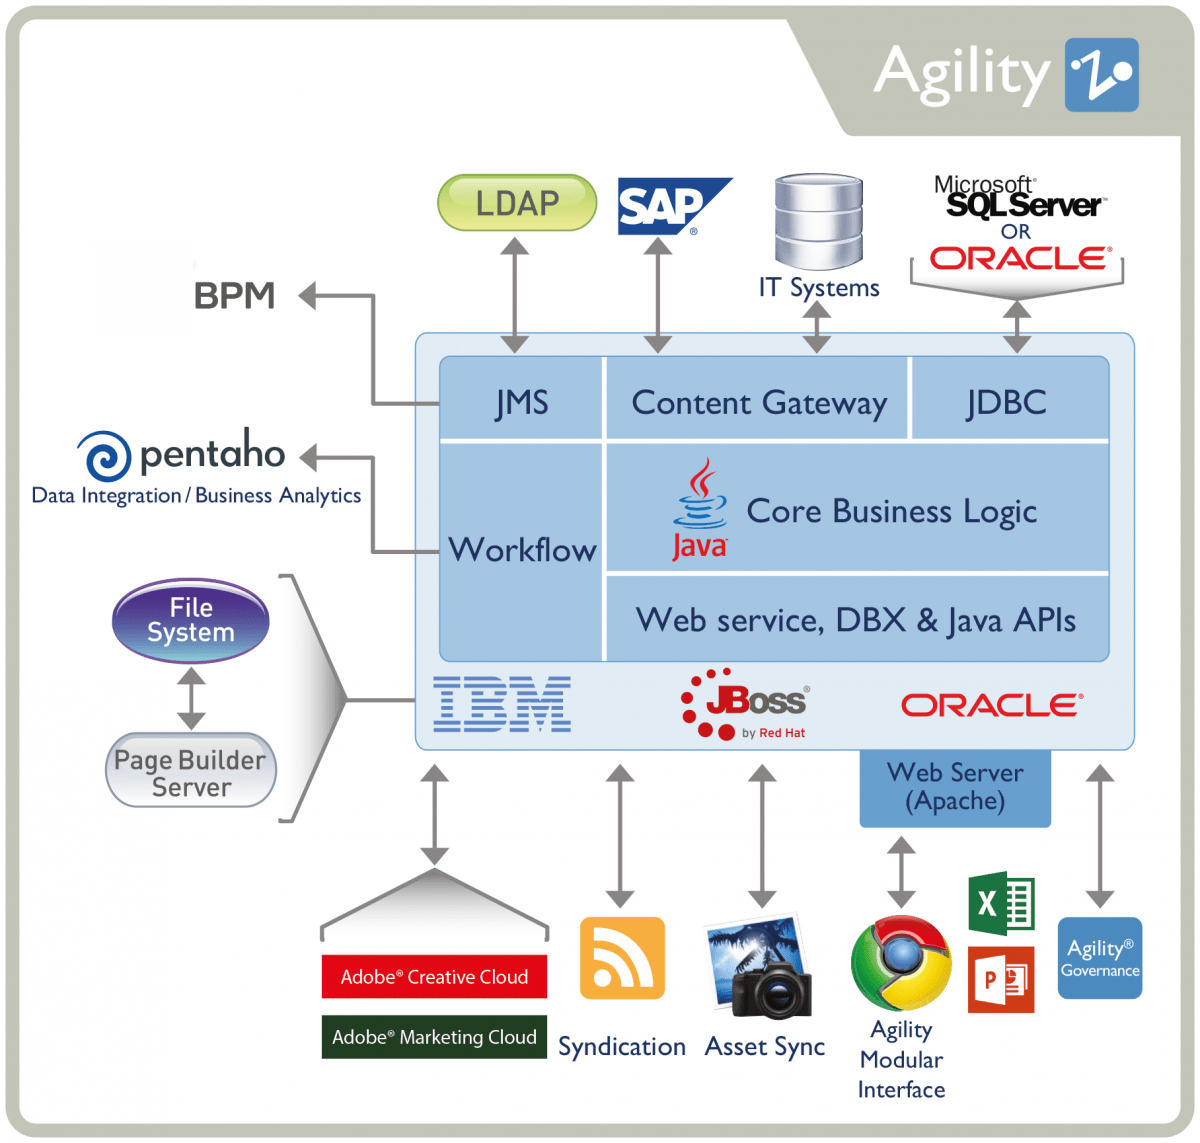 sap 3 tier architecture diagram derbi gpr 50 wiring product information management technology agility